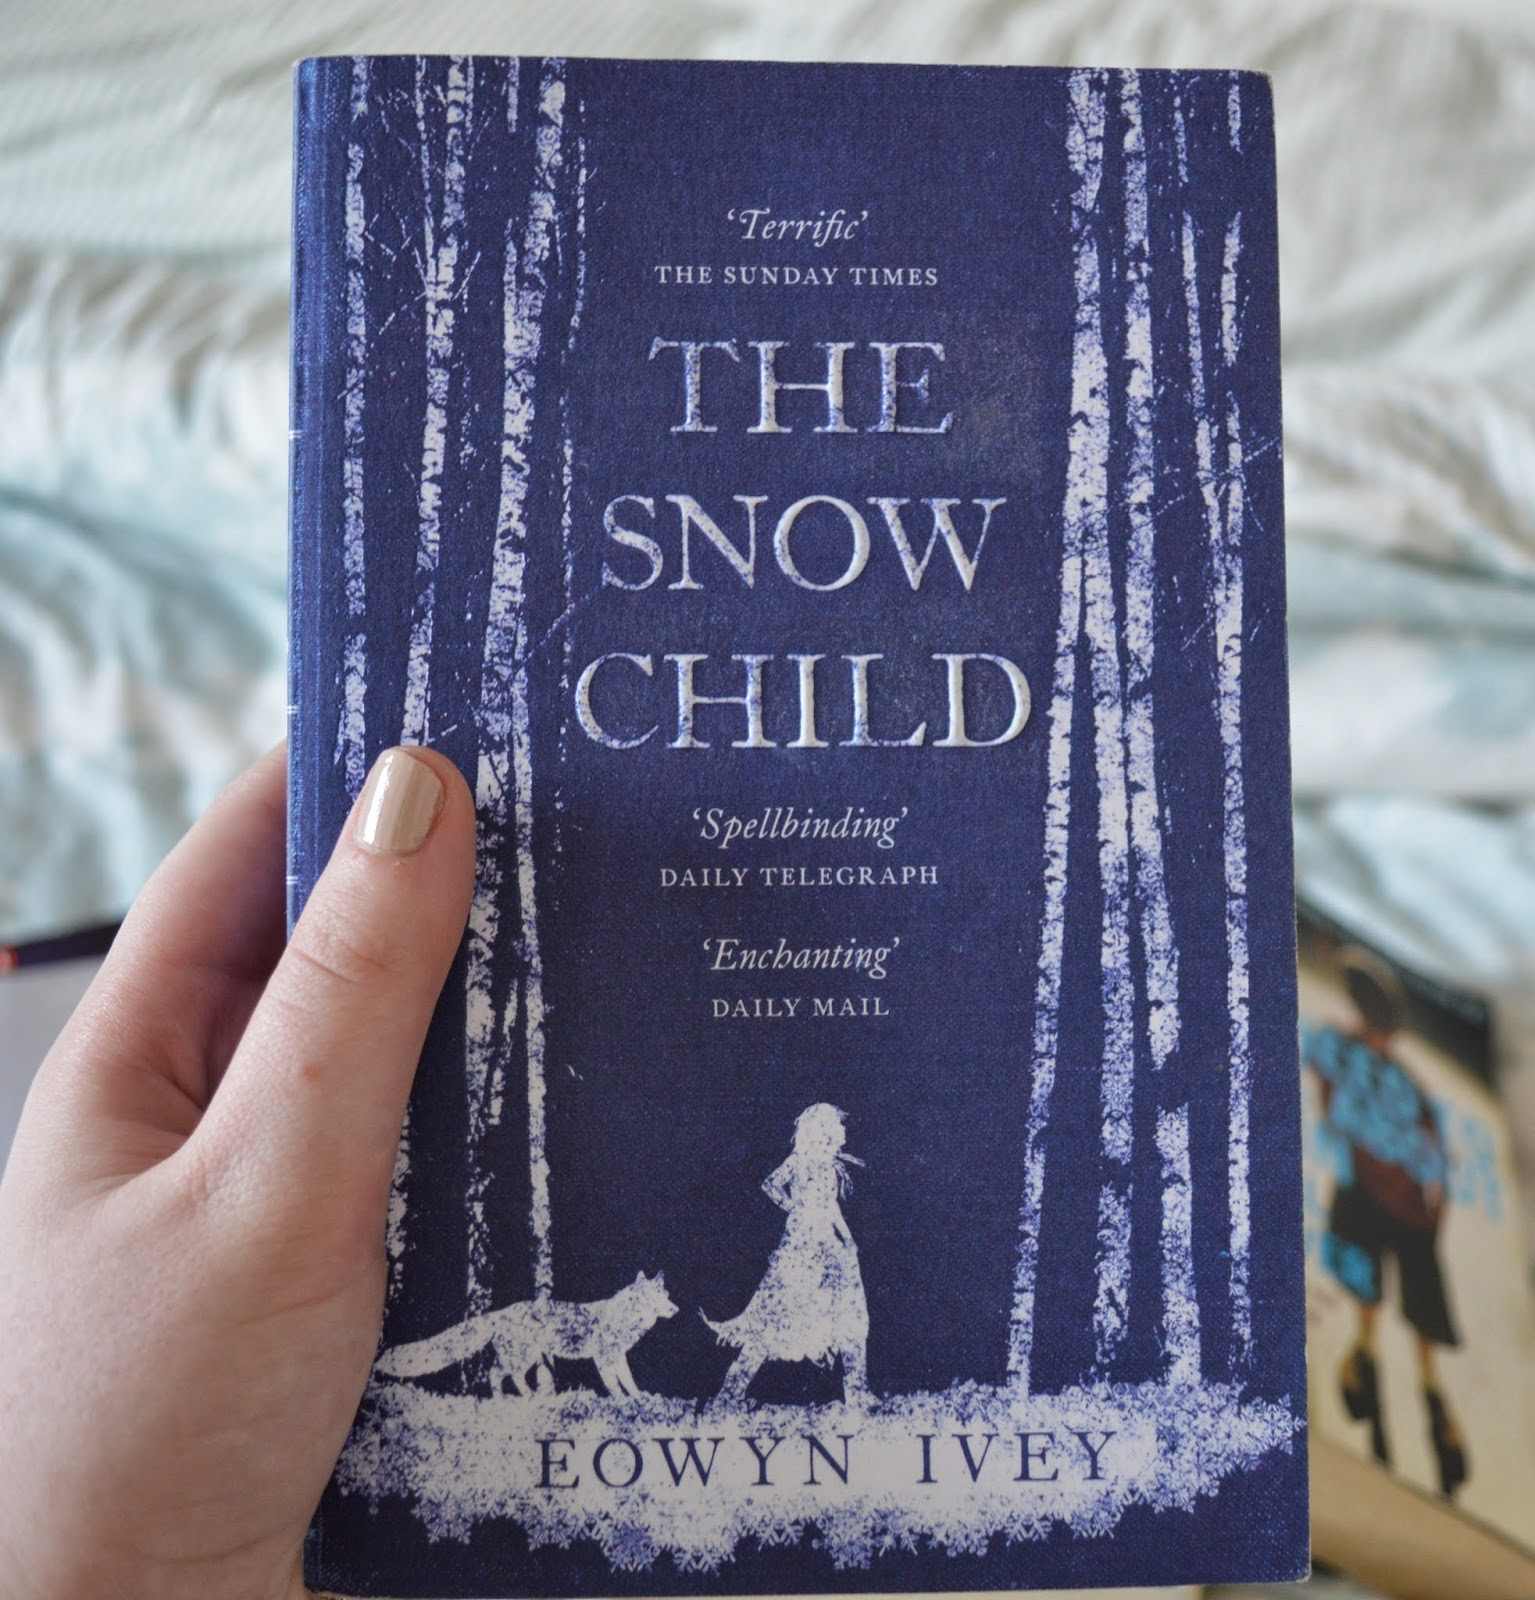 The Snow Child, Eowyn Ivey,photo, photography, list, mother's day, recommendations, paperback, family centred, literature, suggestions,